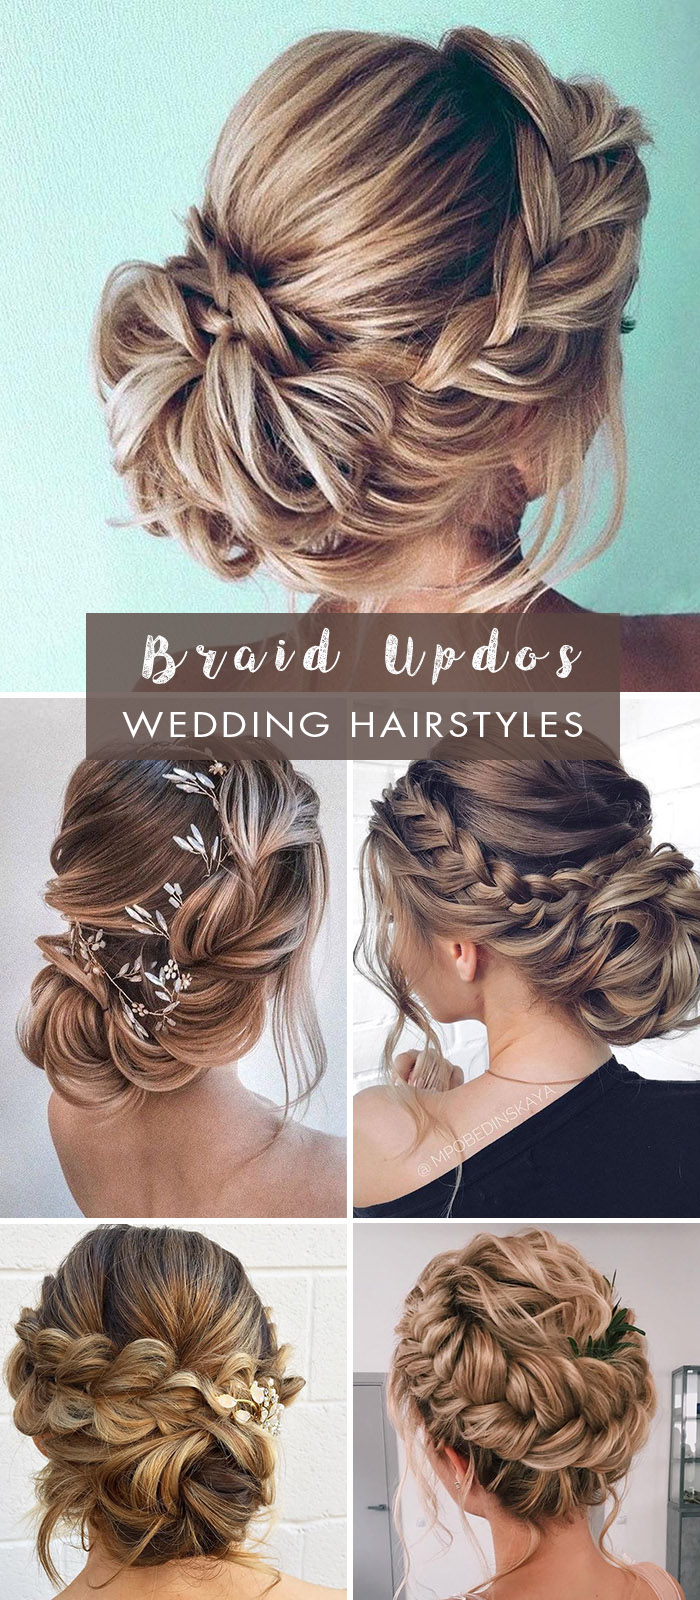 loose braid updo bridal hairstyles